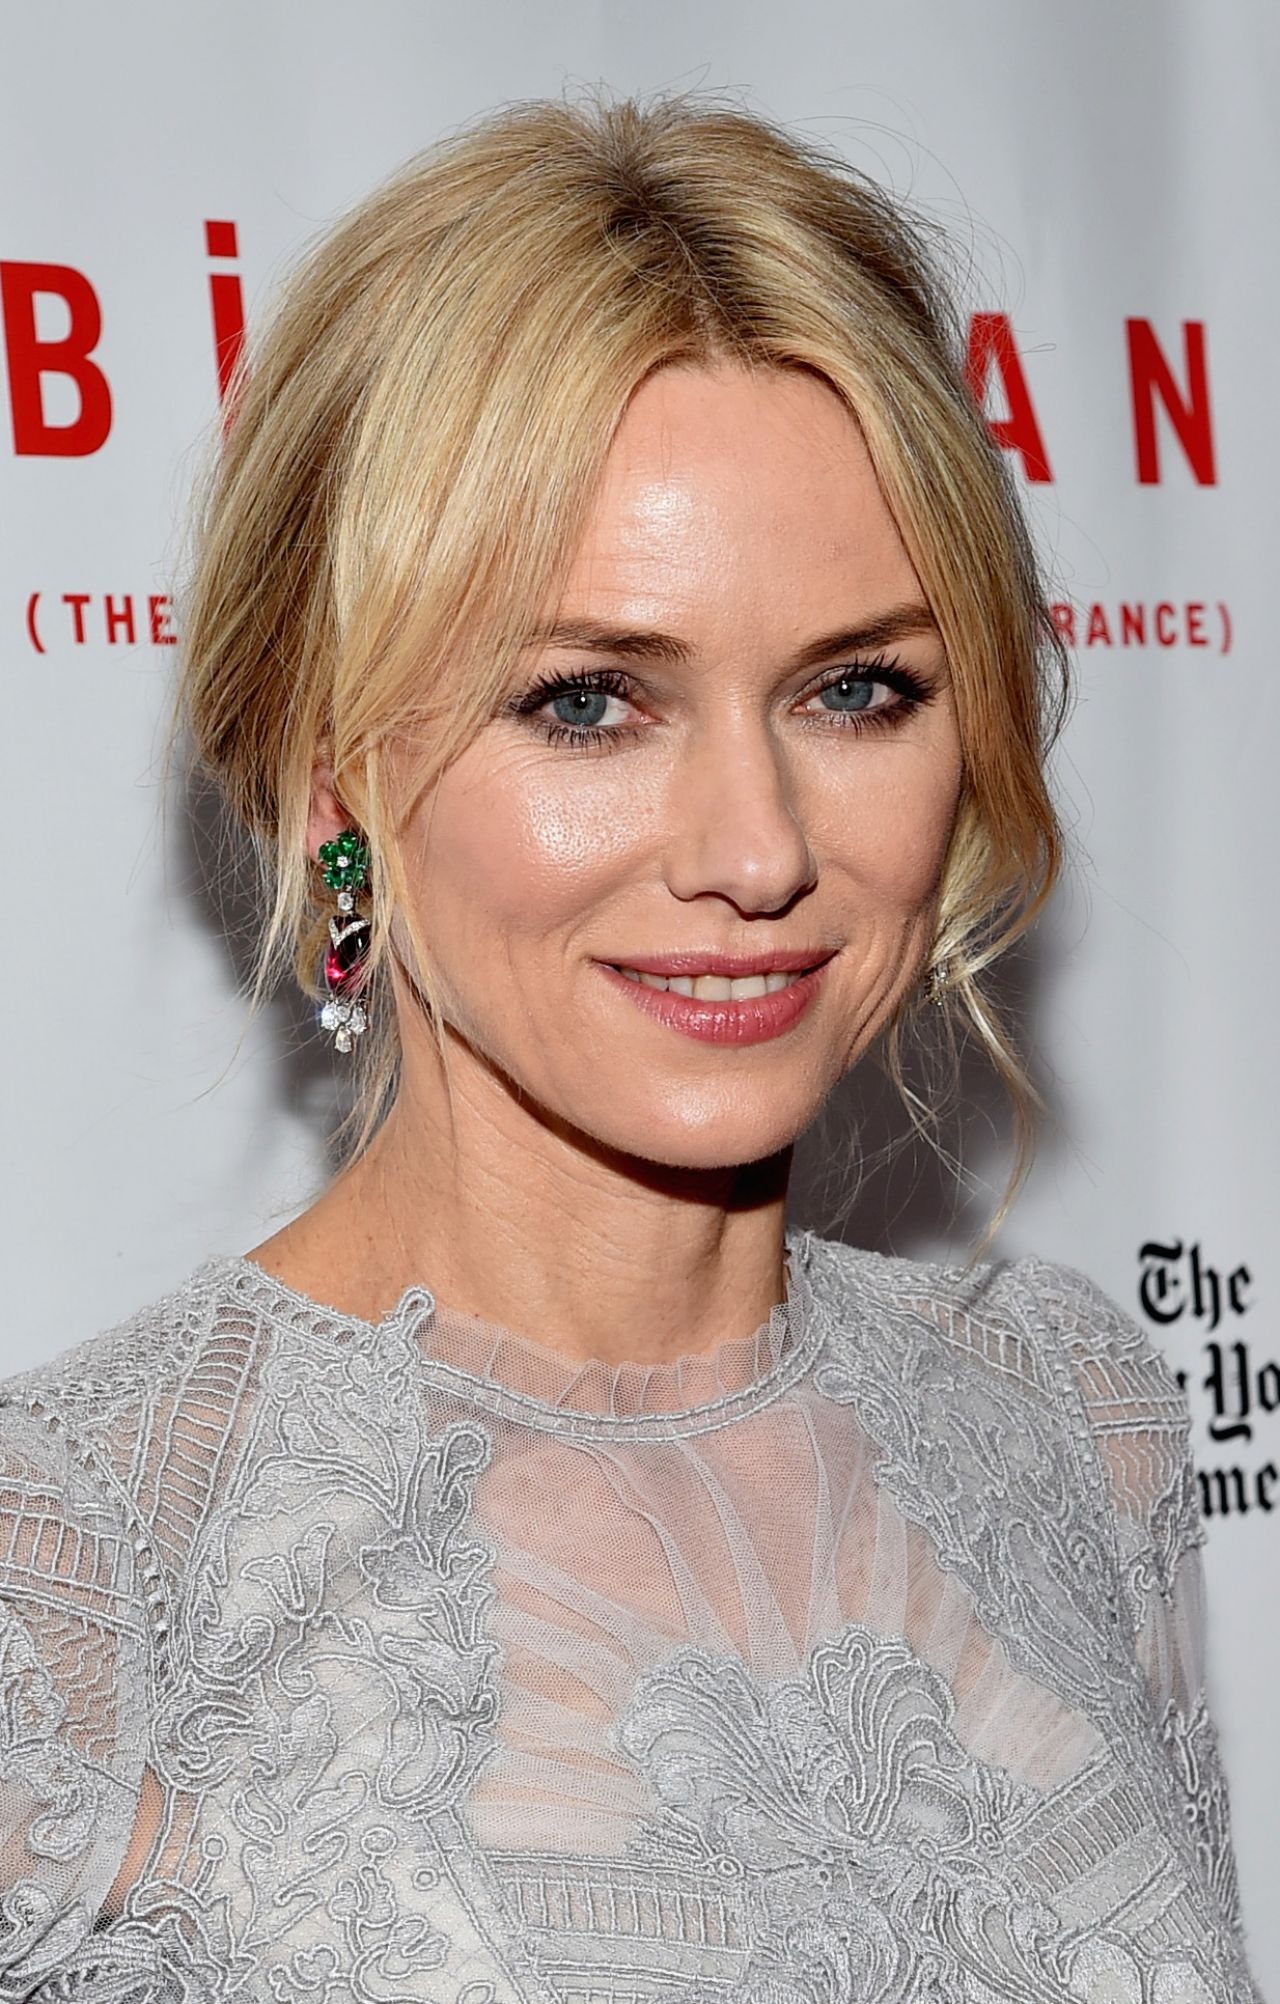 Naomi Watts - 'Birdman' Screening - Closing Night Gala Presentation o... Naomi Watts